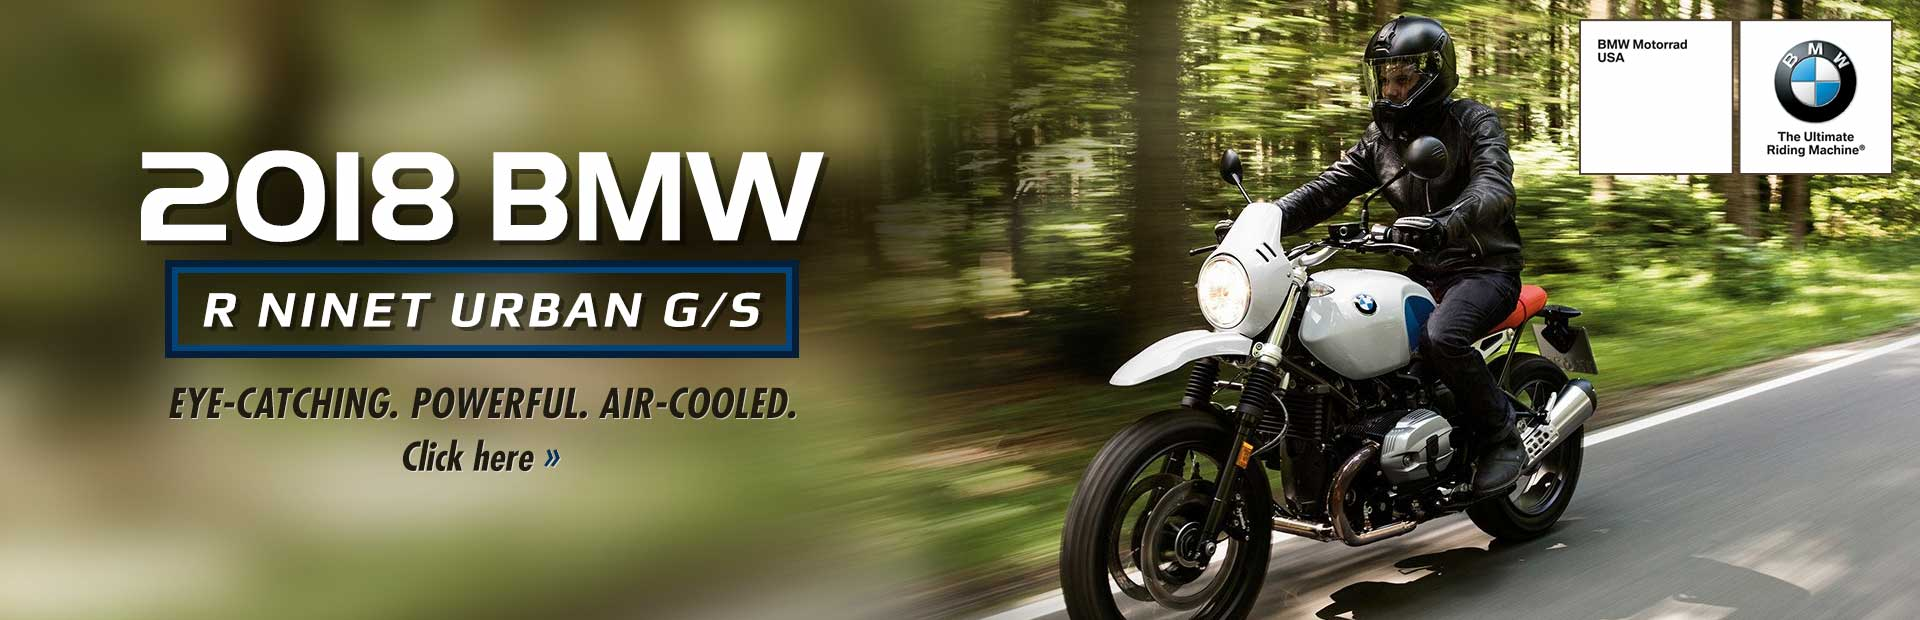 bmw motorcycles of pittsburgh wexford, pa (724) 934-4269